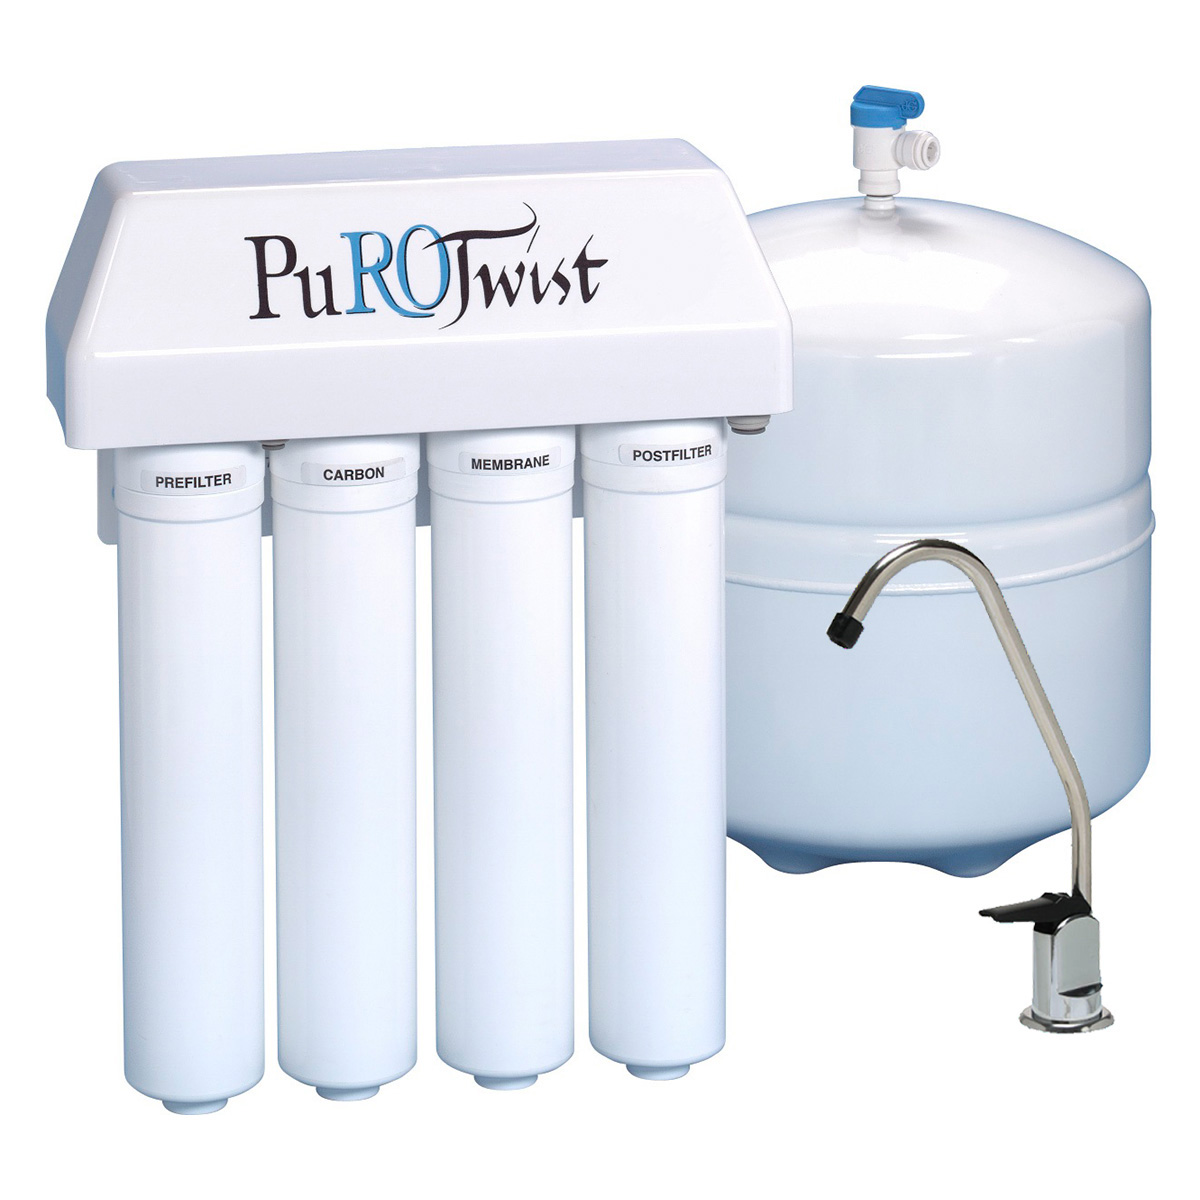 How do I install a water filter